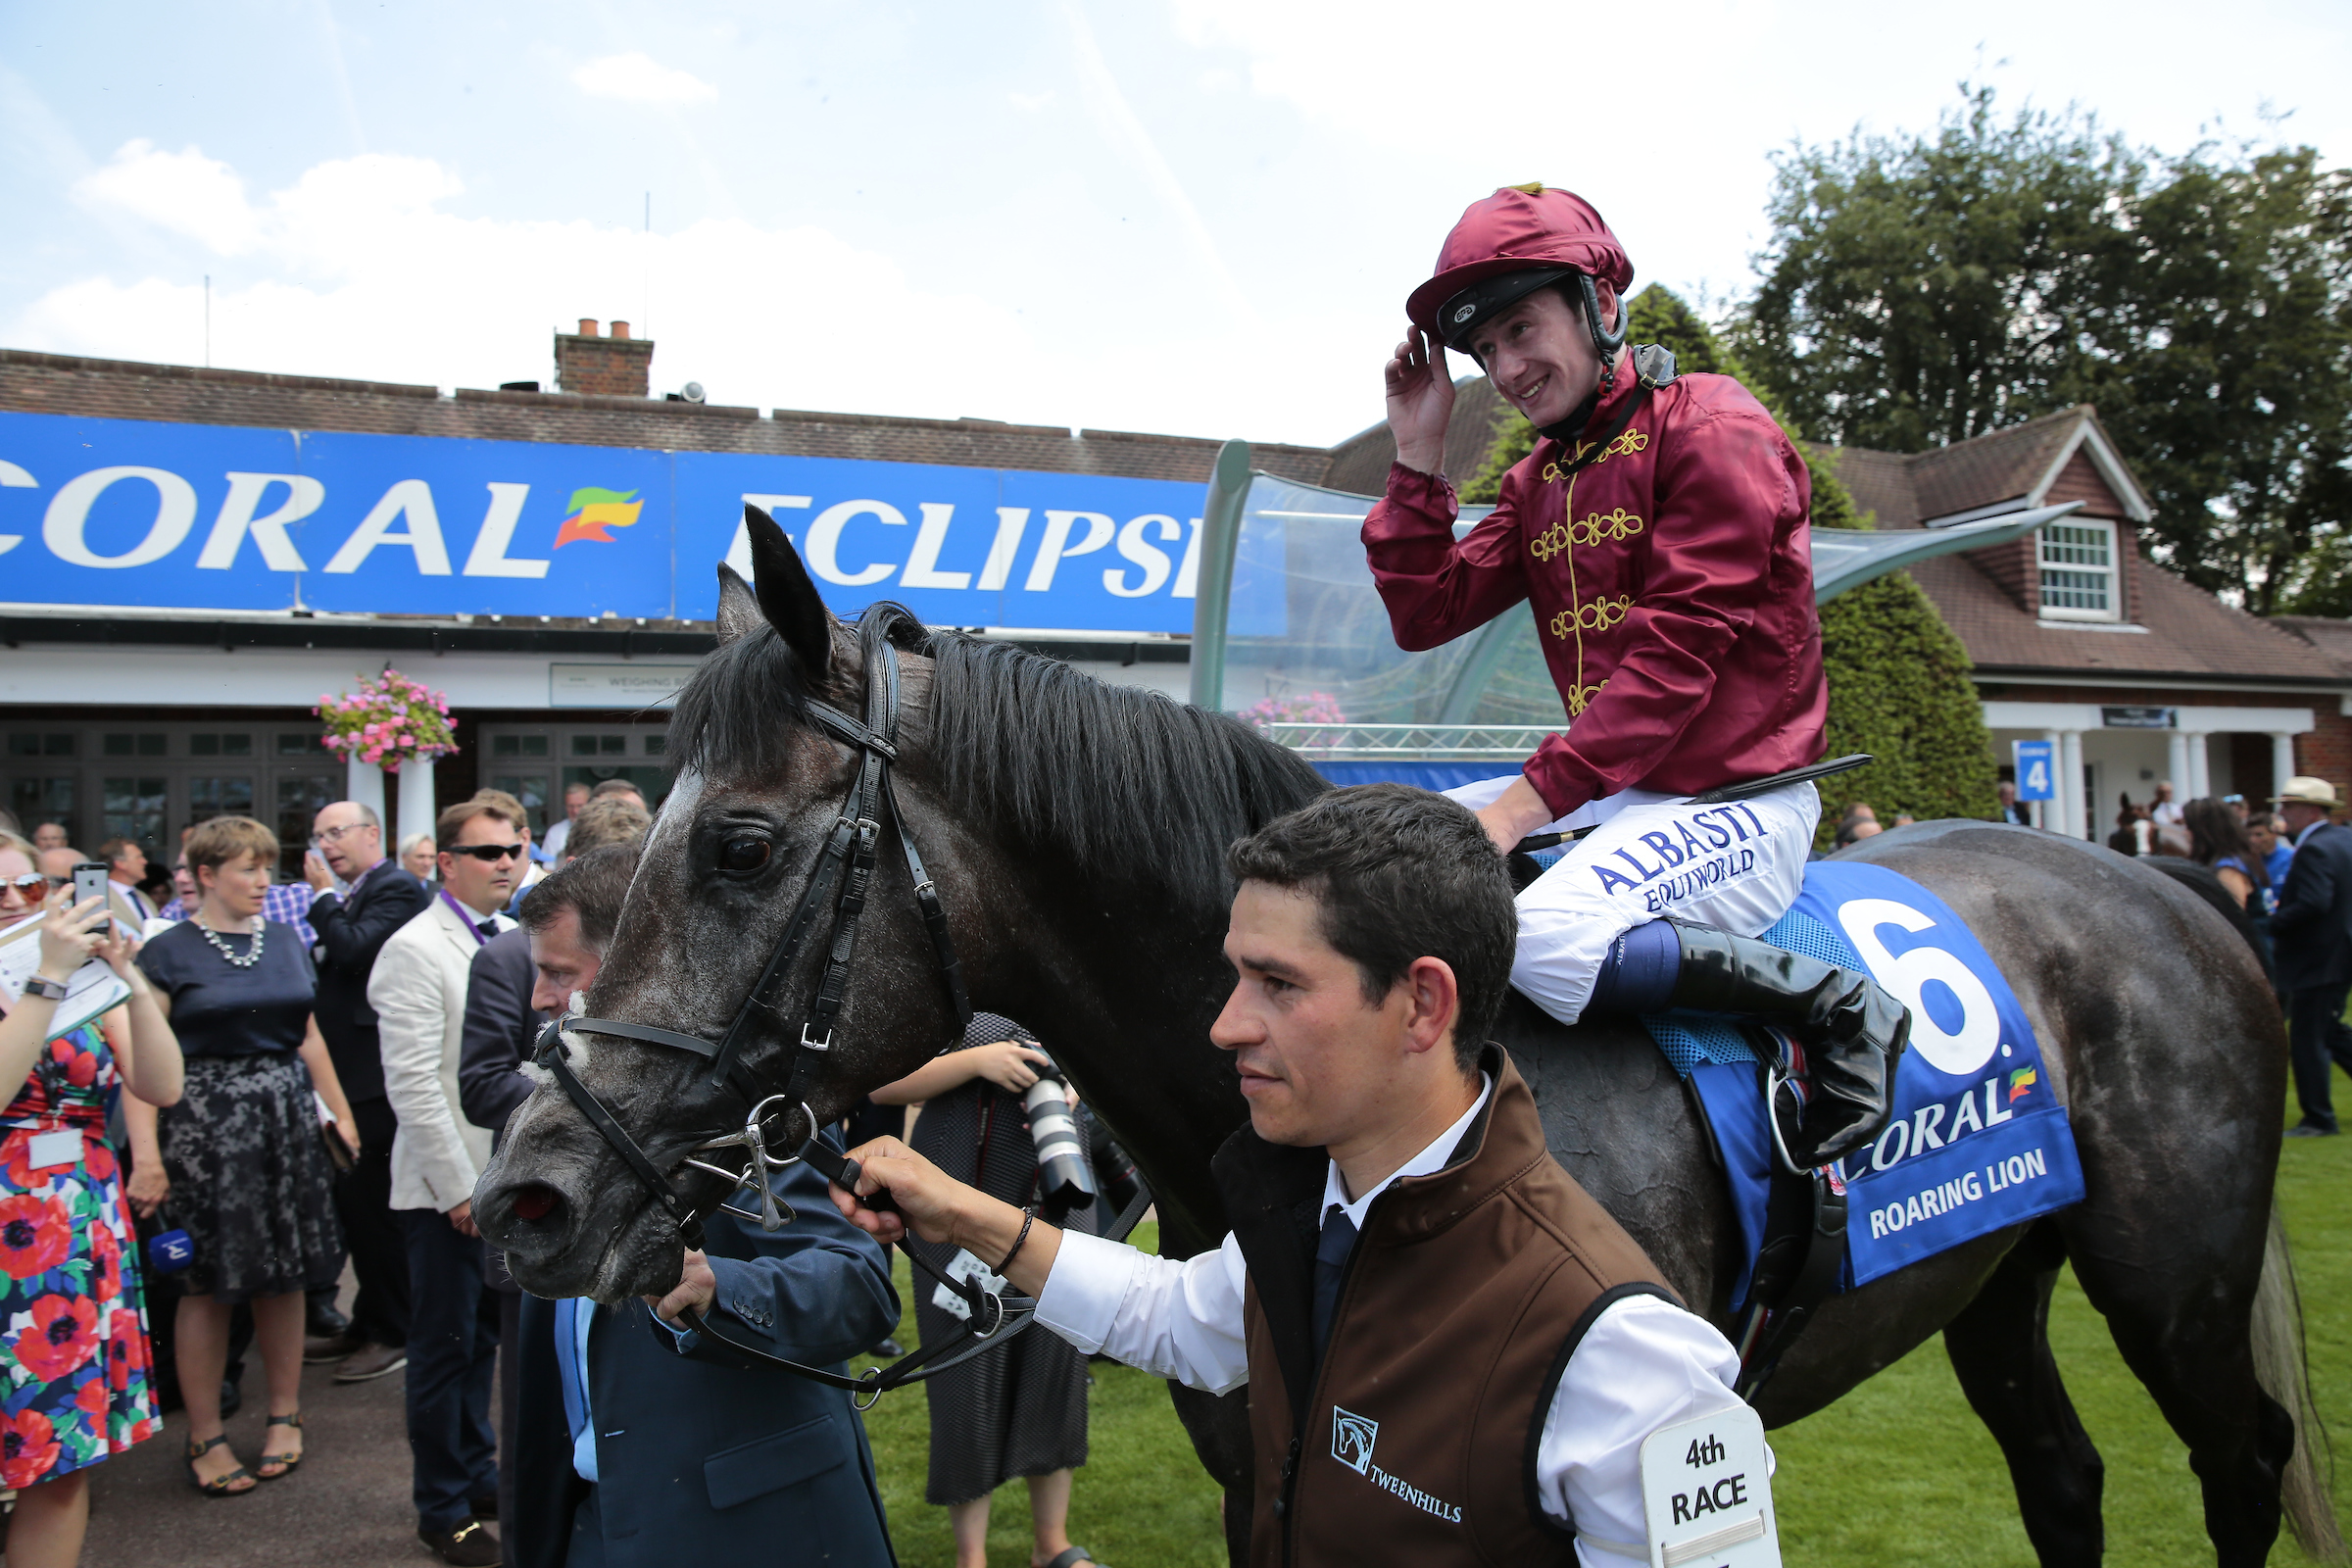 Murphy returns to the winner's enclosure after winning the Eclipse on Roaring Lion. Pic: Focusonracing